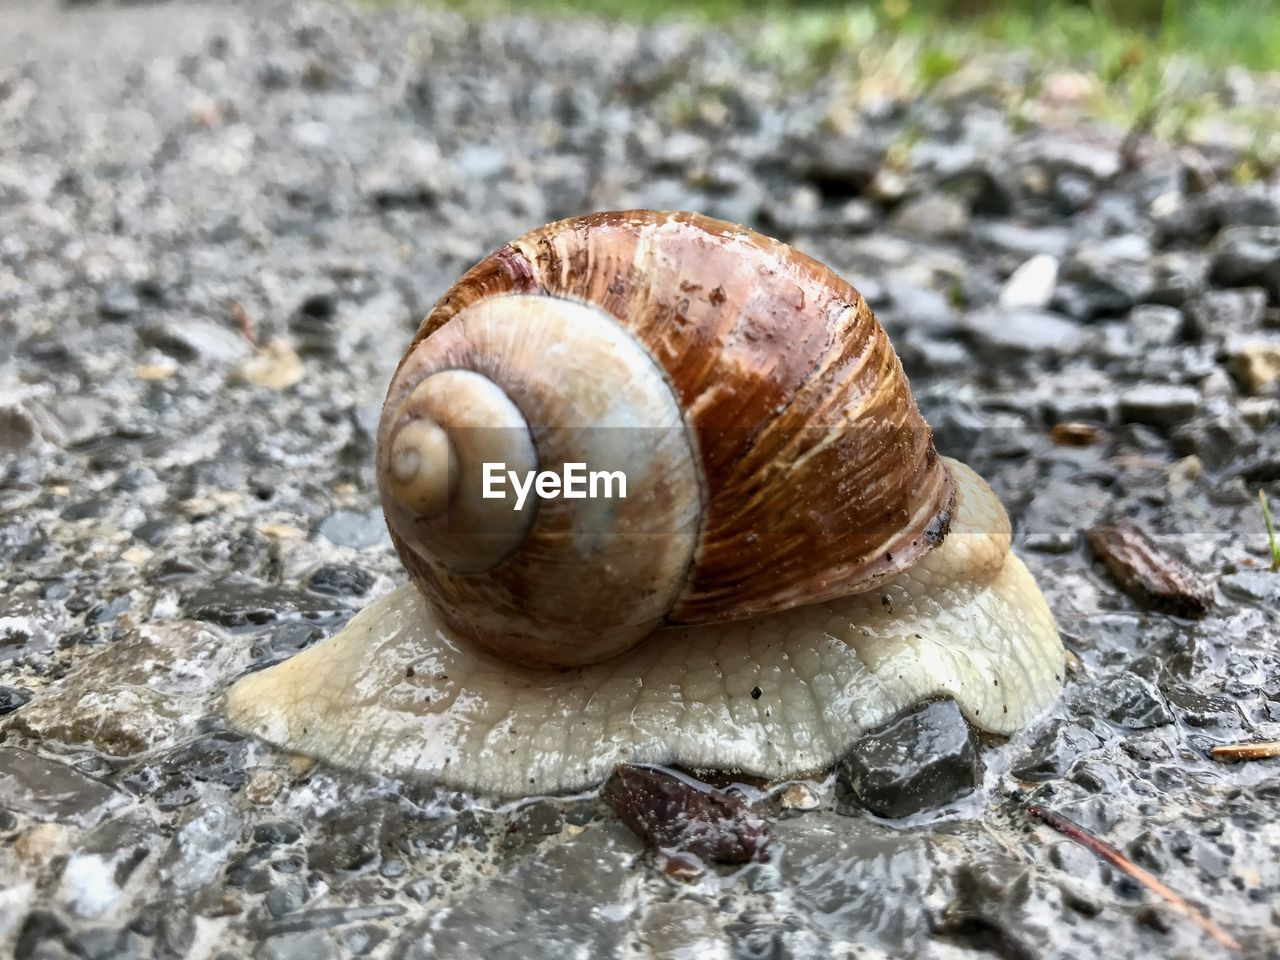 snail, gastropod, animal shell, one animal, animal themes, mollusk, wildlife, nature, close-up, fragility, animals in the wild, no people, outdoors, day